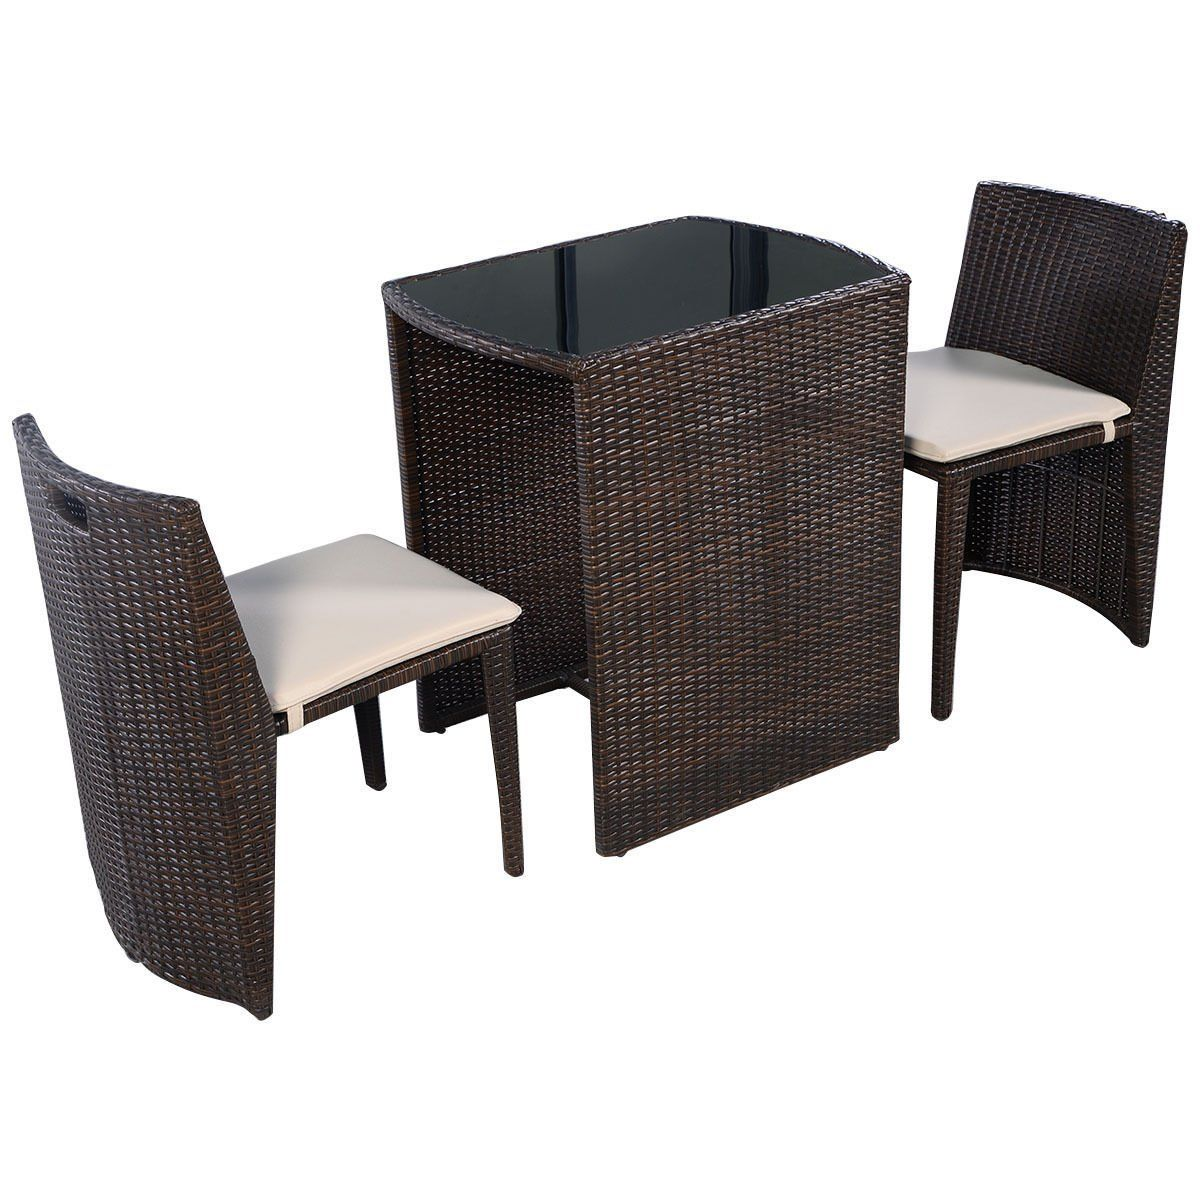 Cushioned outdoor wicker patio set garden lawn sofa furniture seat